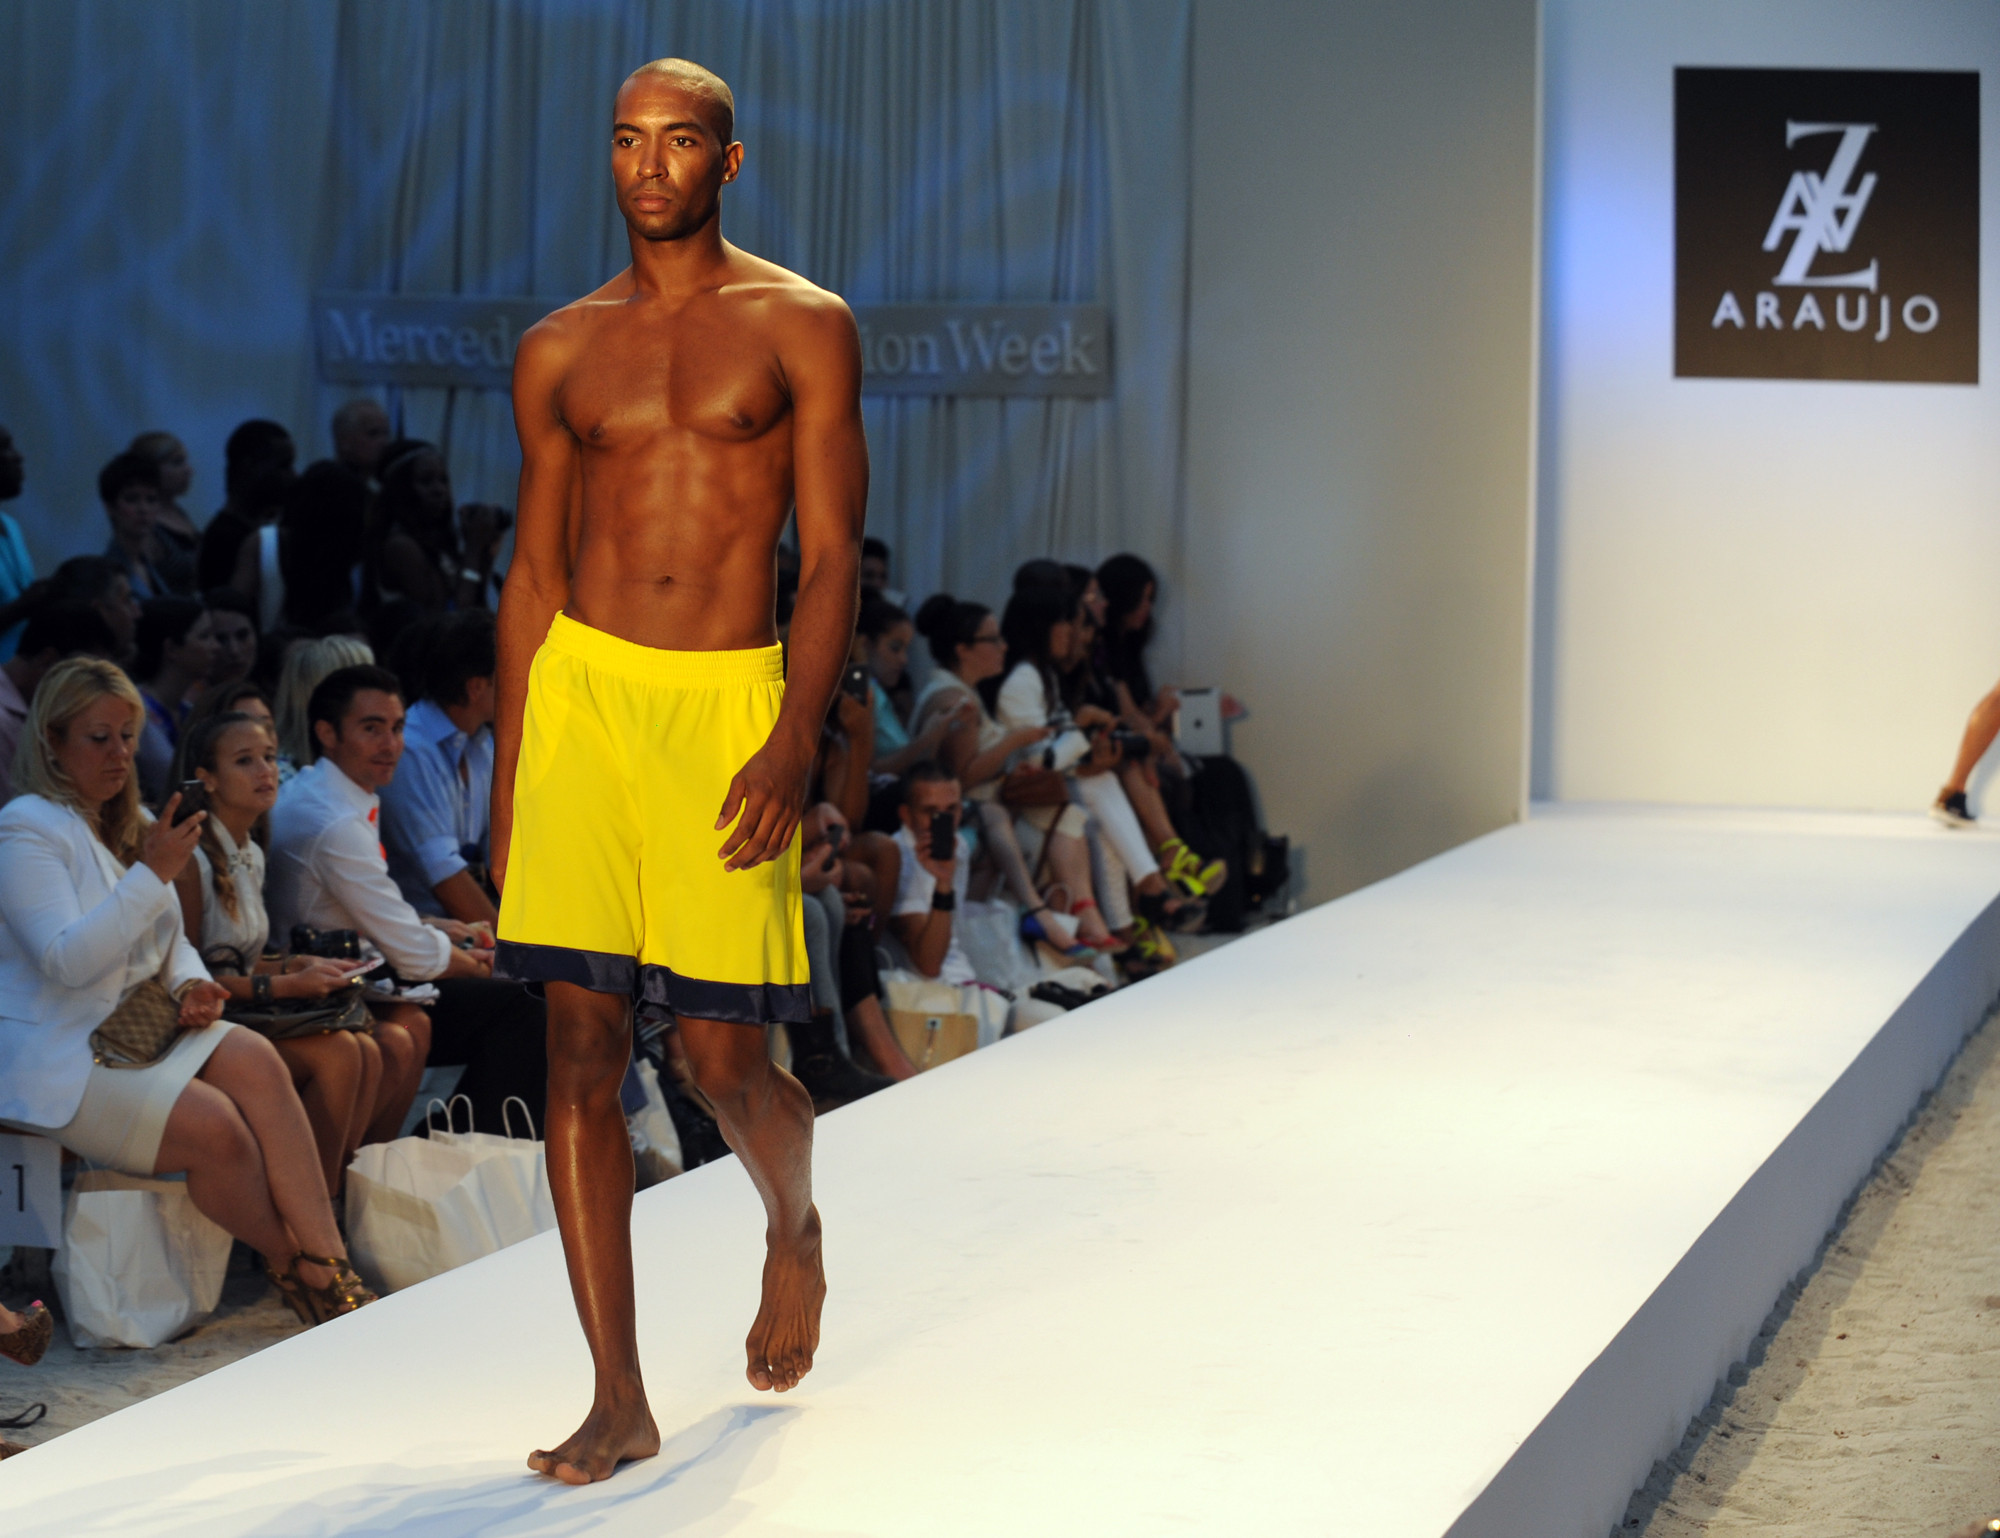 A look back at Miami Swim Week 2013 - Araujo